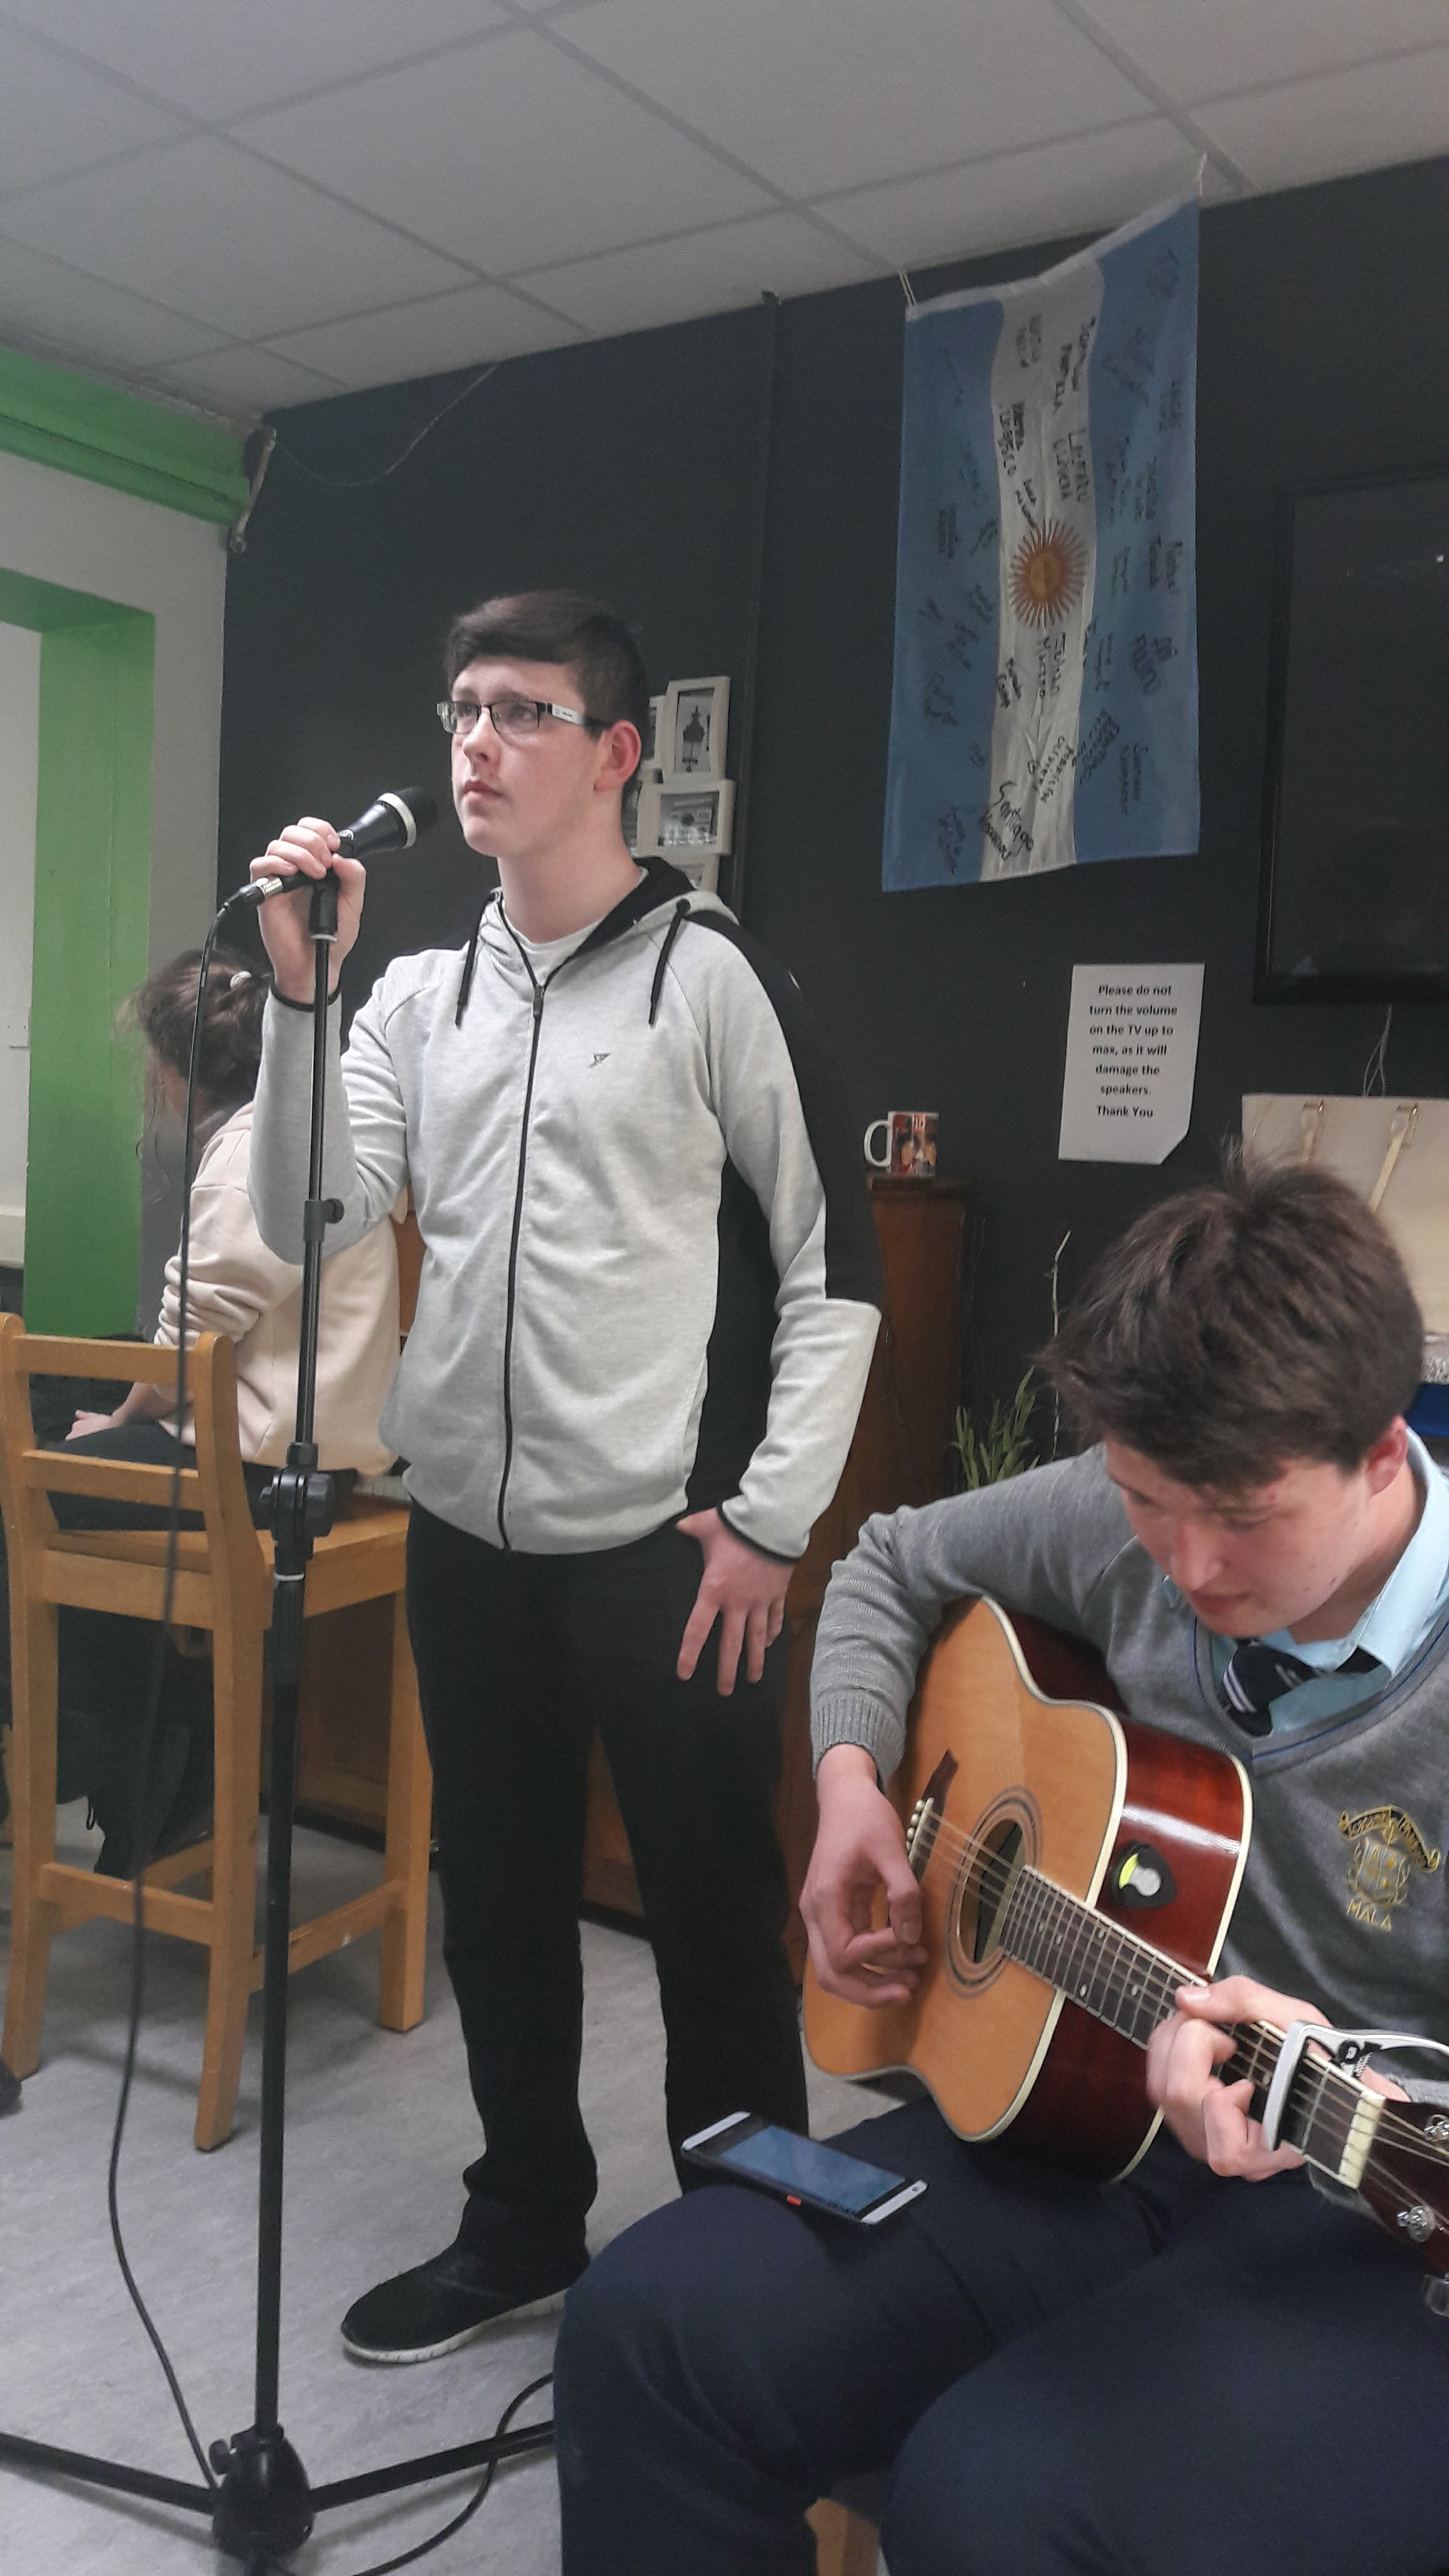 Mallow SPY Singing at Music Project 2017